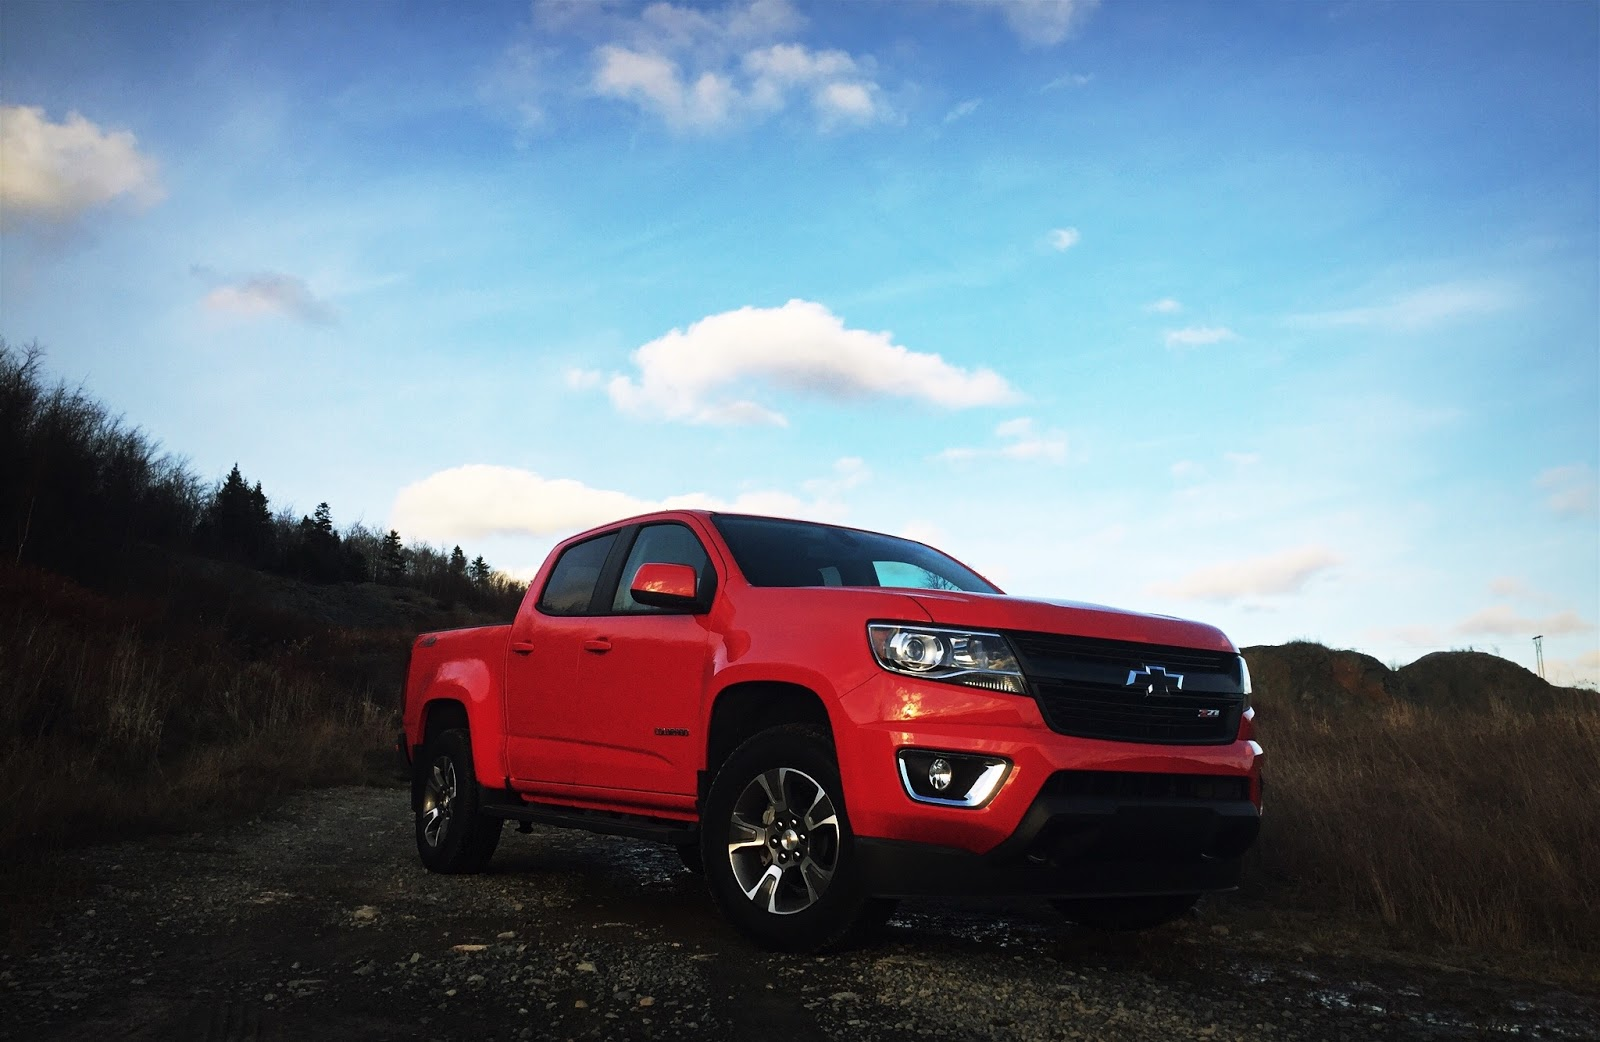 2016 chevrolet colorado z71 crew cab 4 4 review adding up the midsize savings gcbc. Black Bedroom Furniture Sets. Home Design Ideas